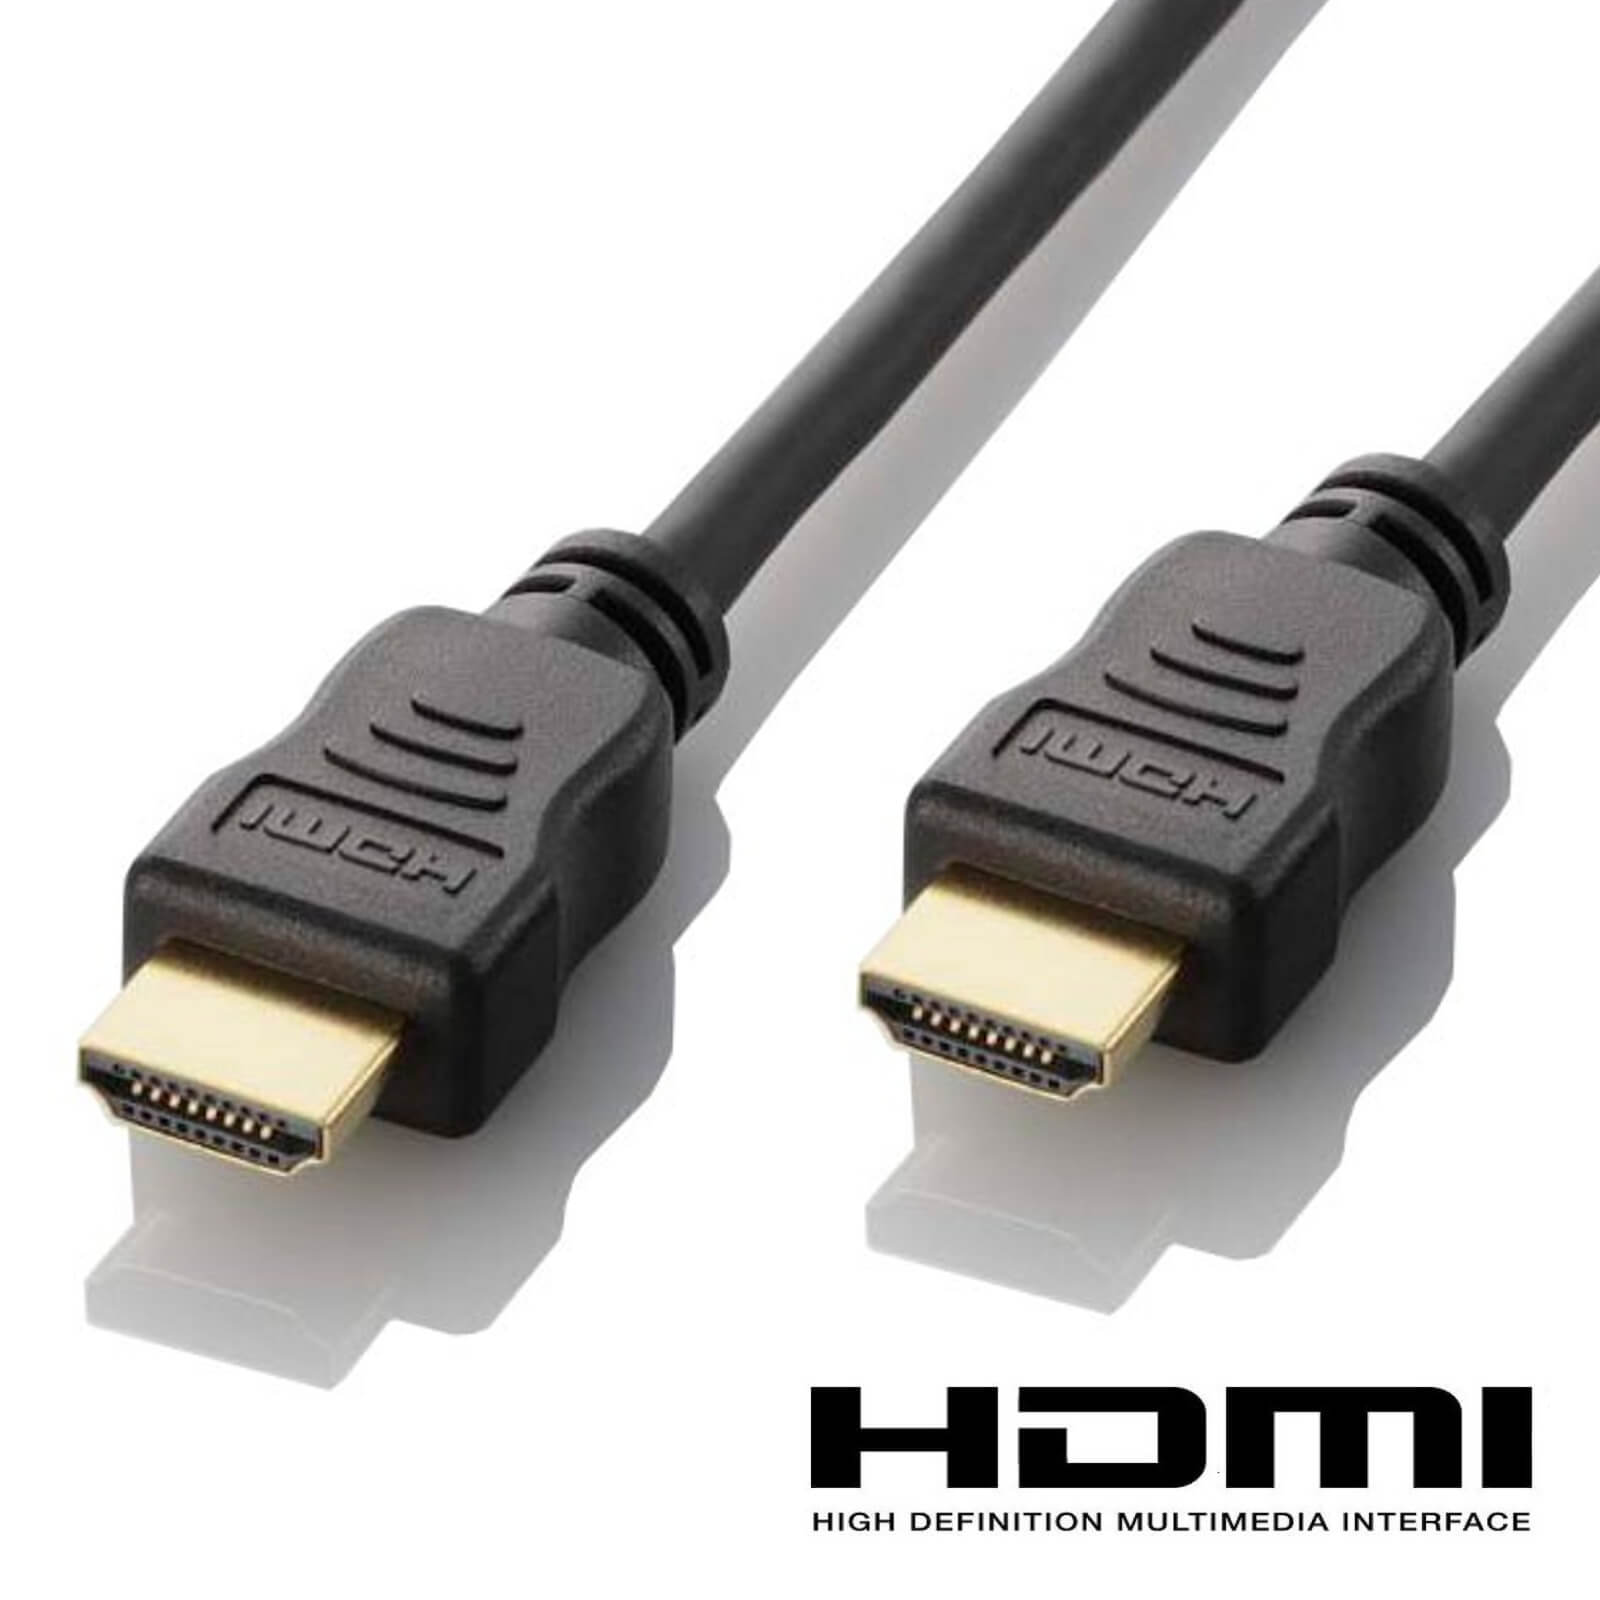 How to connect hdmi cable from lenovo laptop to tv